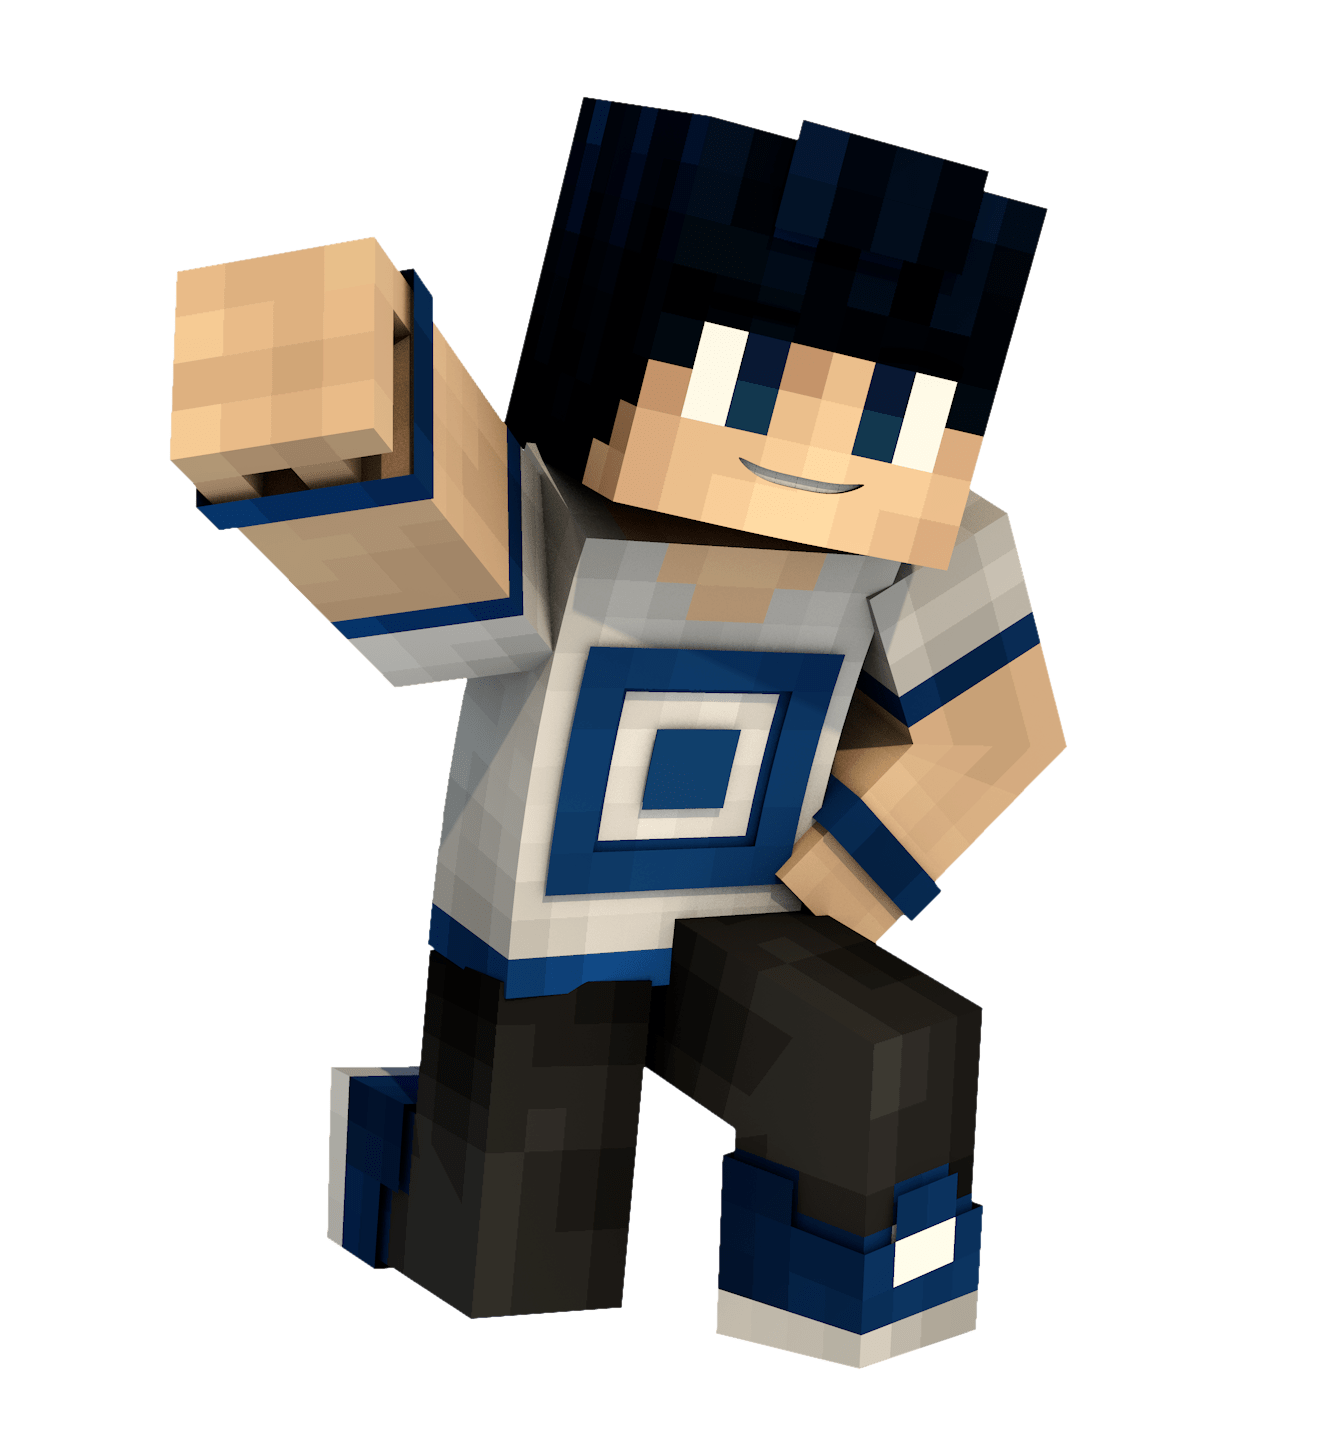 Minecraft png images. Planet character transparent stickpng